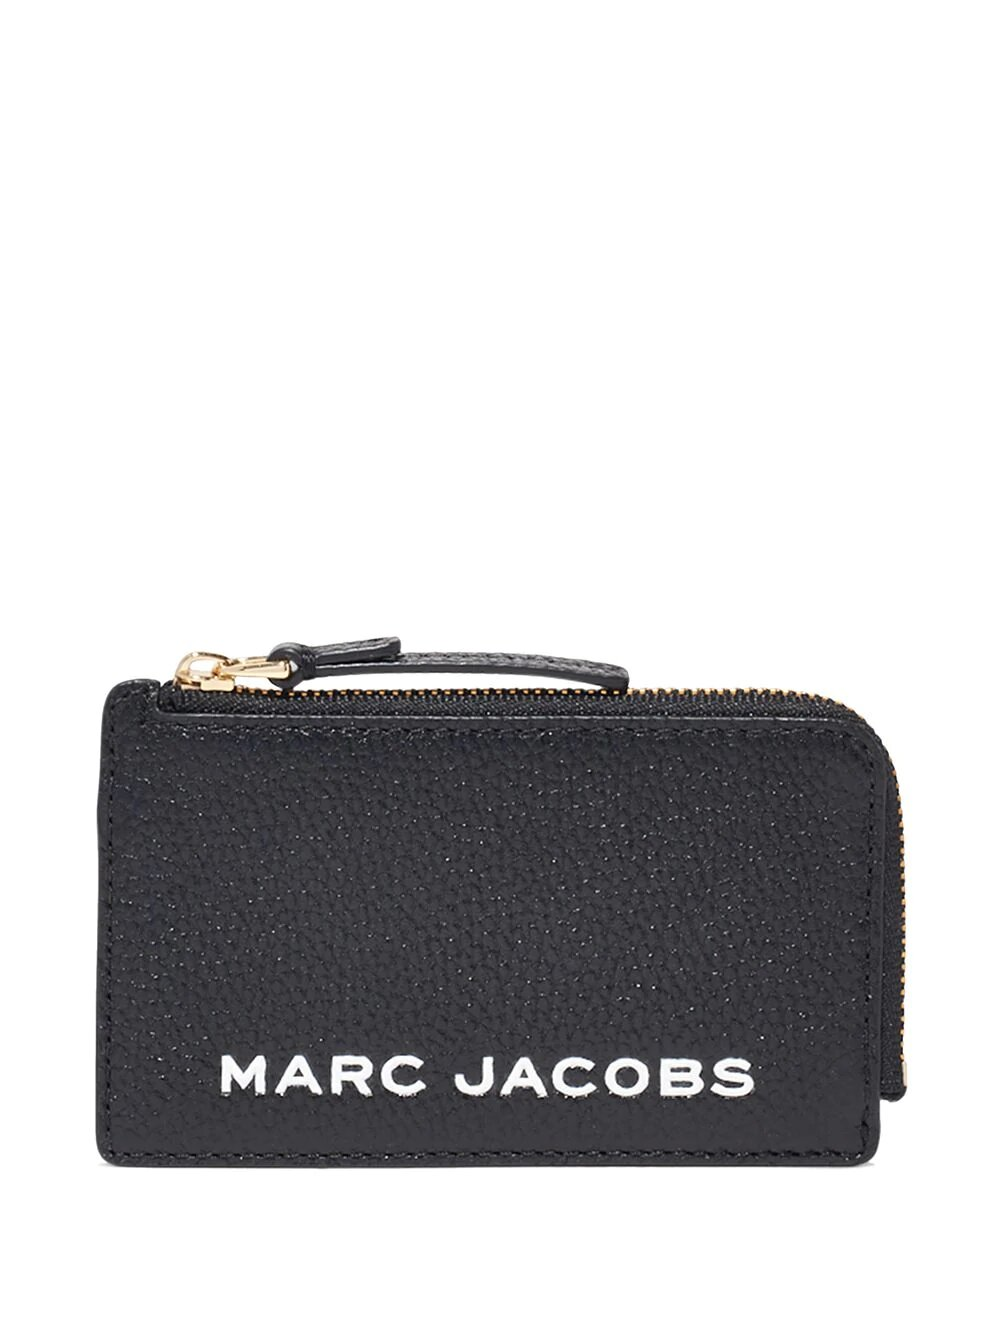 Marc Jacobs The Bold Zipped Wallet 207лв